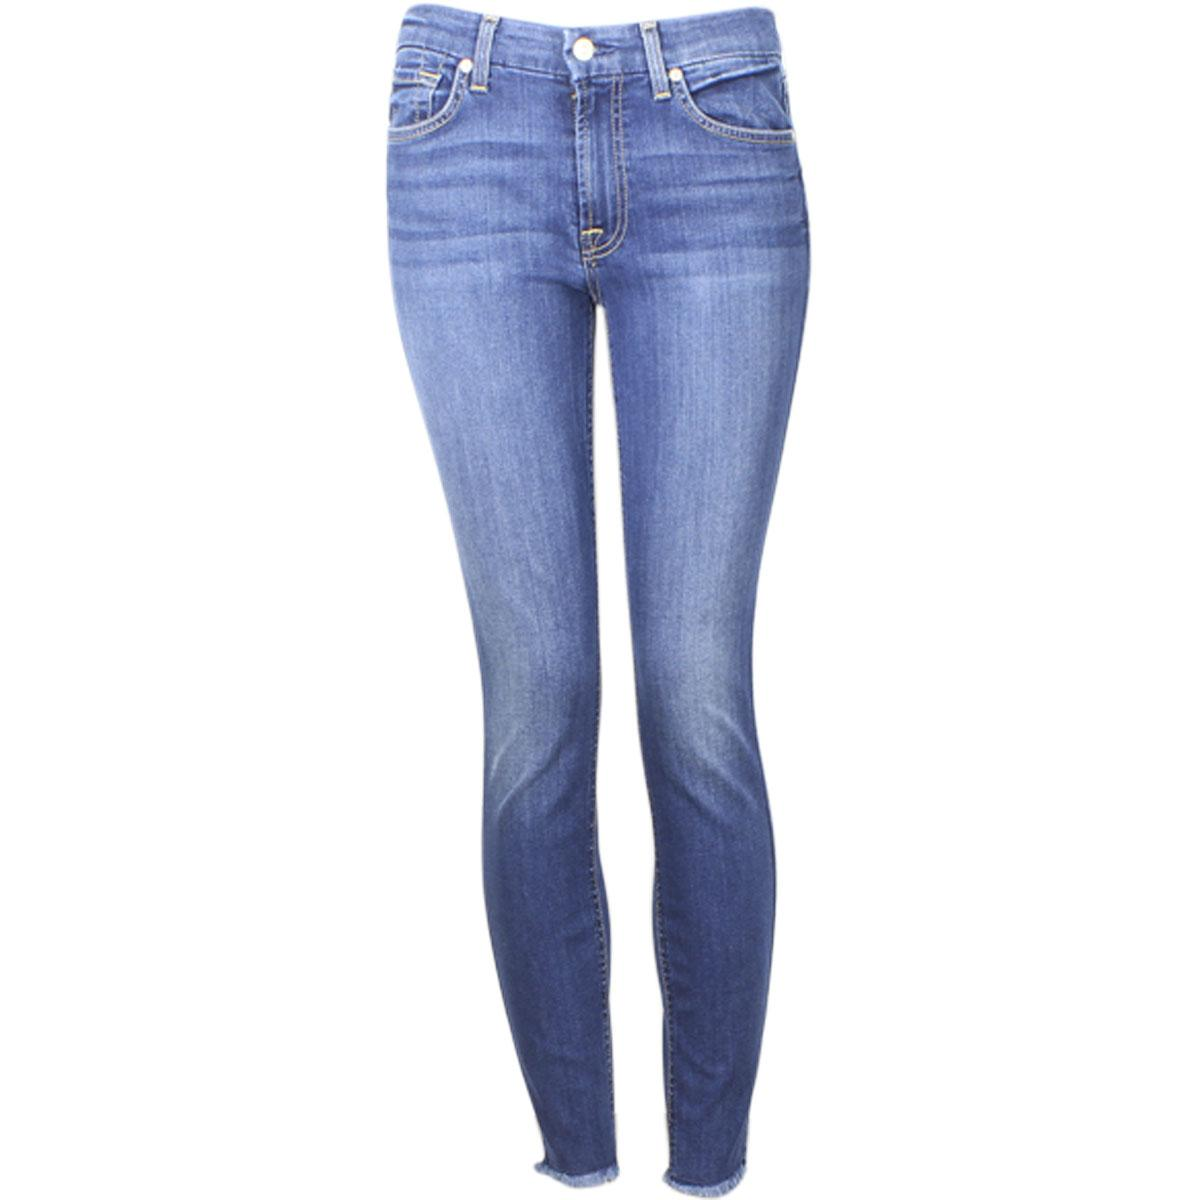 Image of 7 For All Mankind Women's (B)Air Denim The Ankle Skinny Raw Hem Jeans - Blue - 28 (5/6)